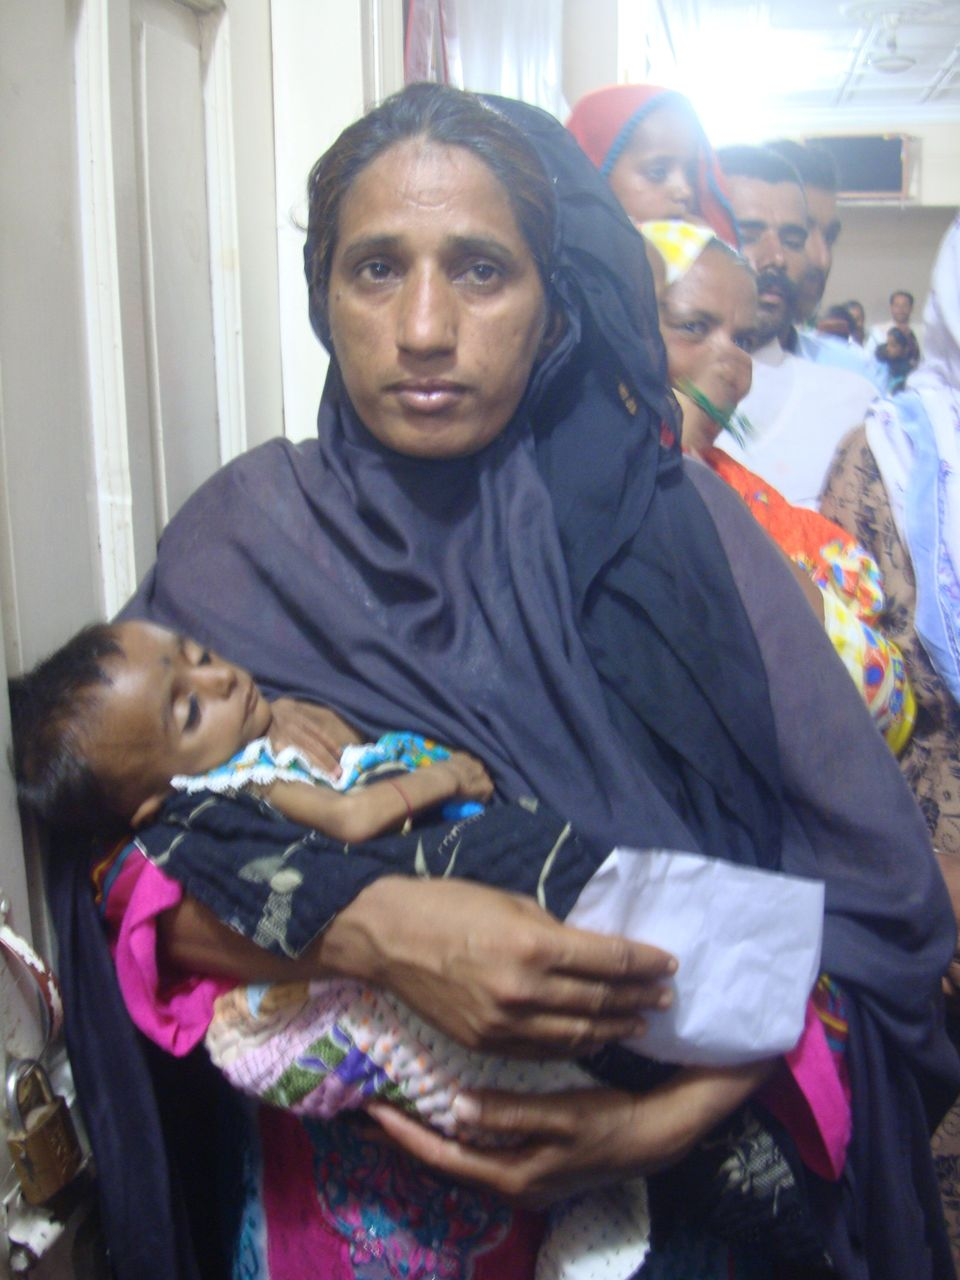 A woman carries her malnourished baby while waiting for her turn to see HIV experts at the Chandka Medical...